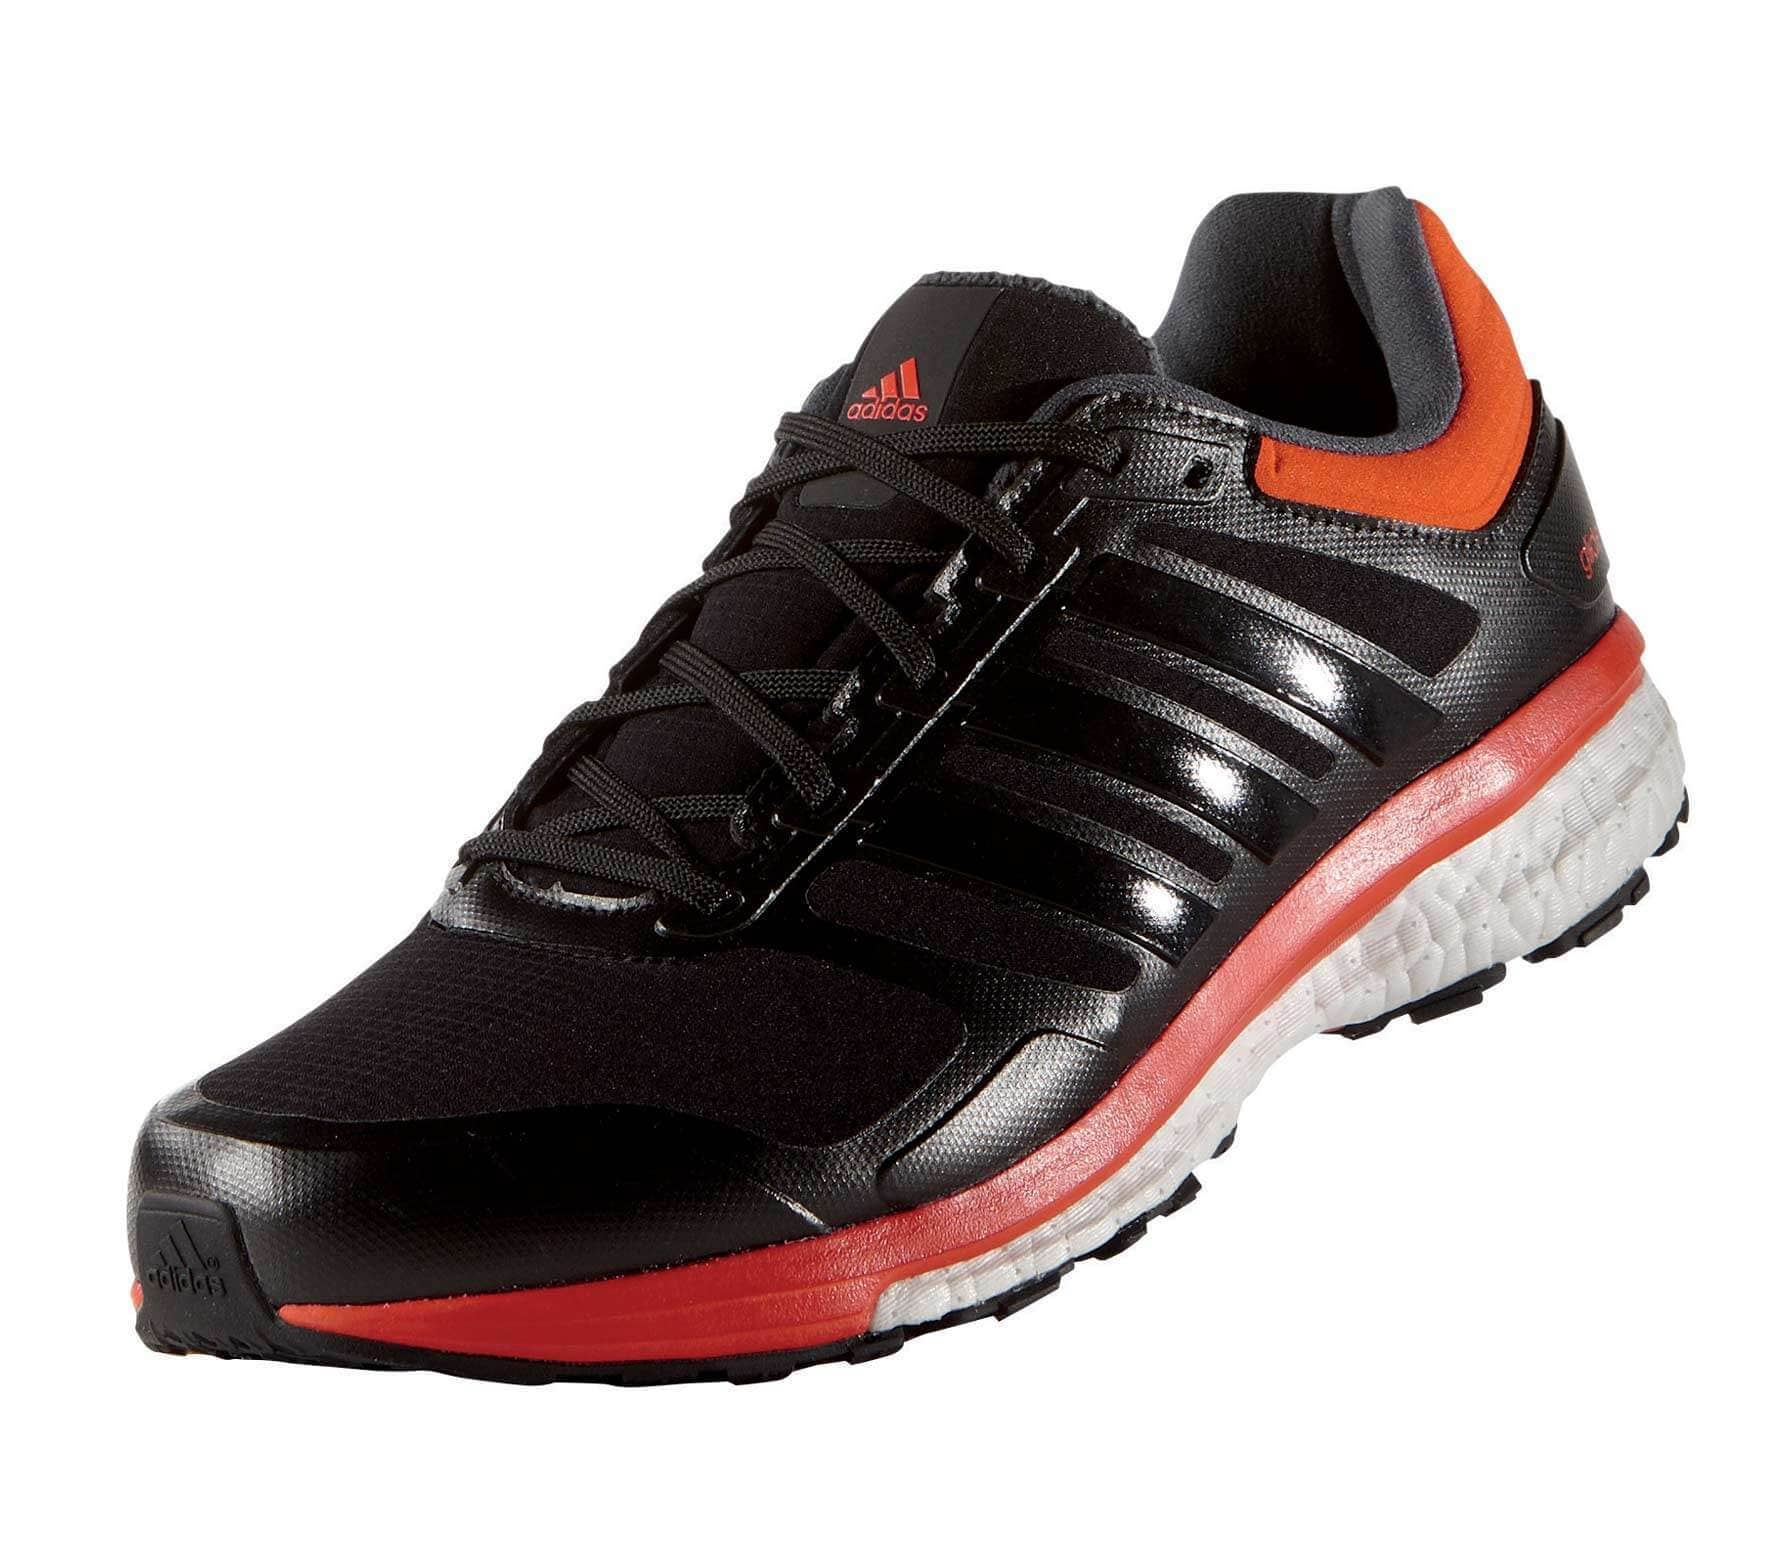 e05ae4da190 Adidas Supernova Glide Boost Atr Men S Running Shoes - Style Guru ...